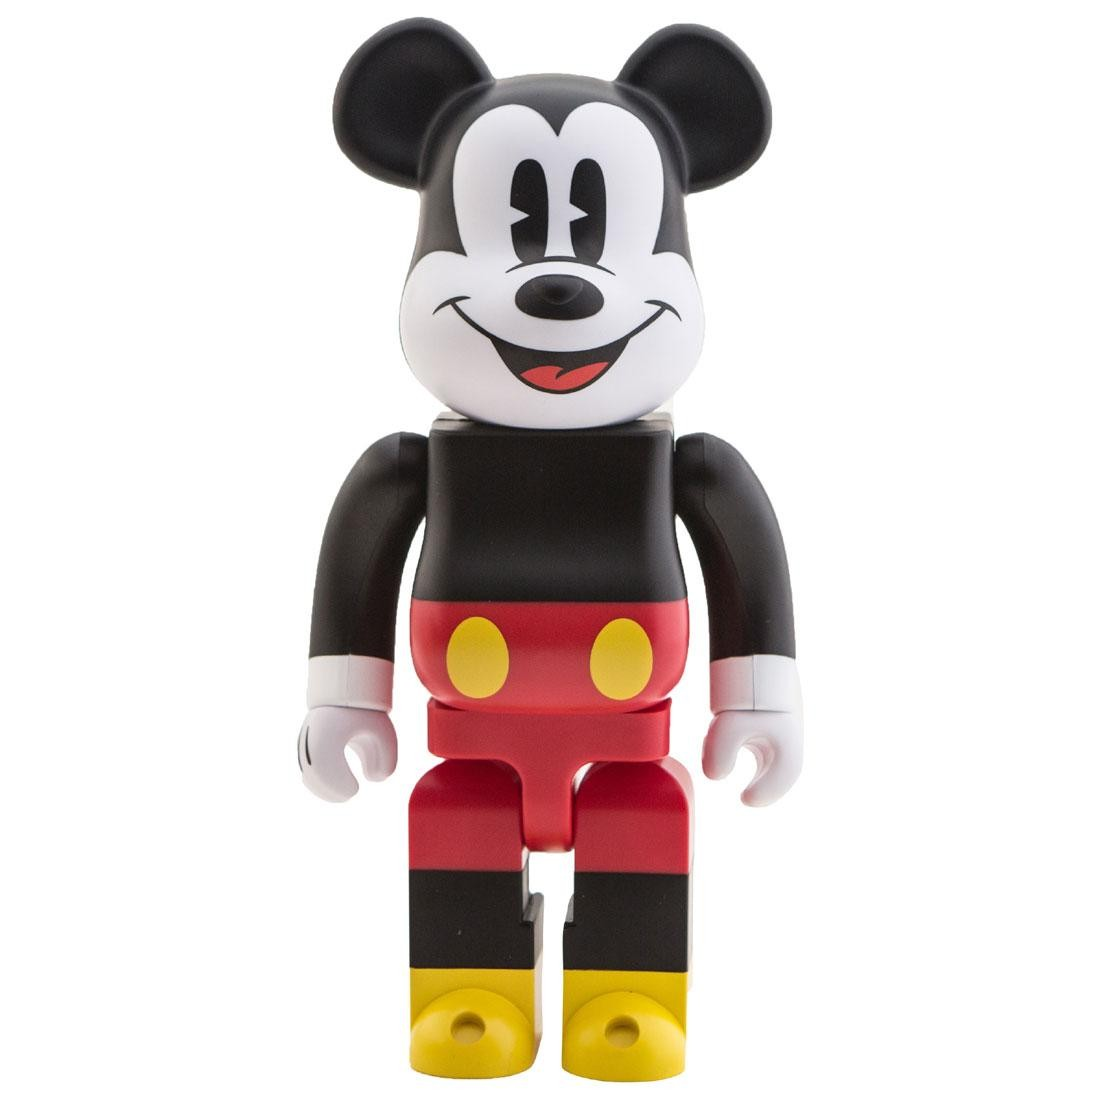 Disney Mickey Medicom Disney Mickey Mouse 400 Bearbrick Figure Black Red